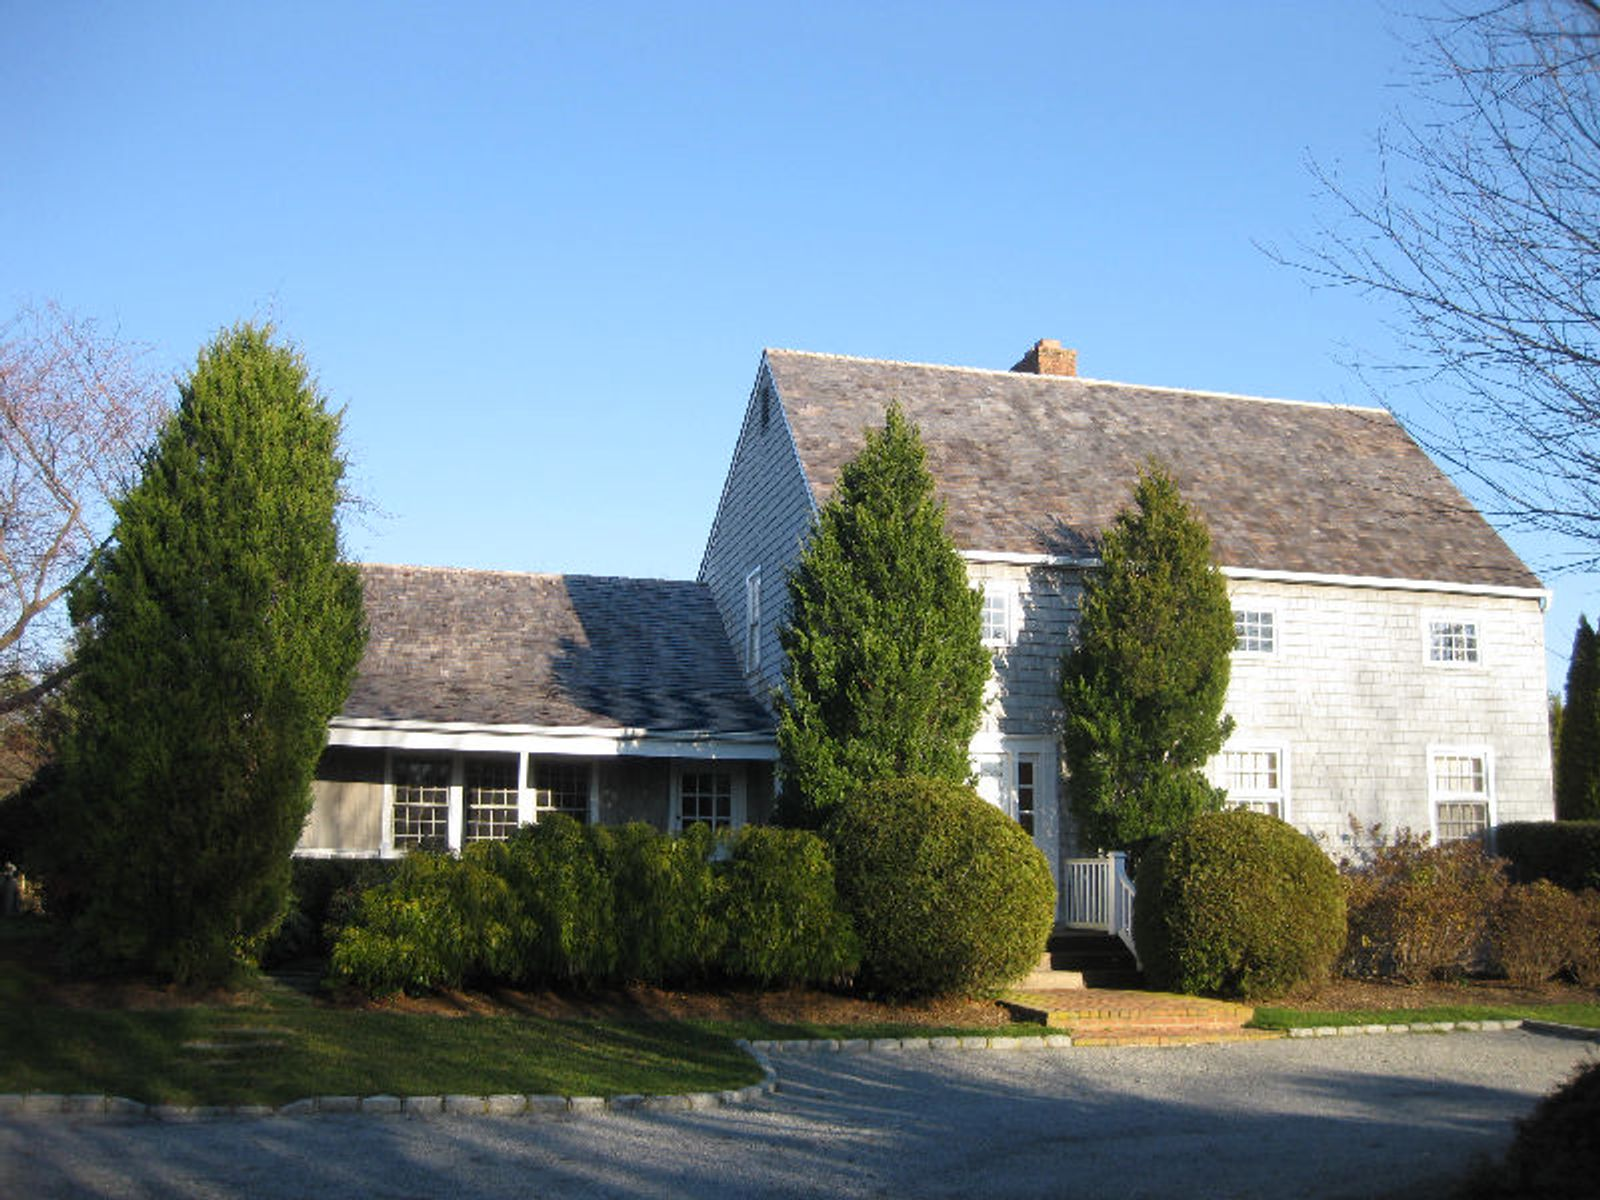 Sagaponack South/Best Location, Sagaponack NY Single Family Home - Hamptons Real Estate